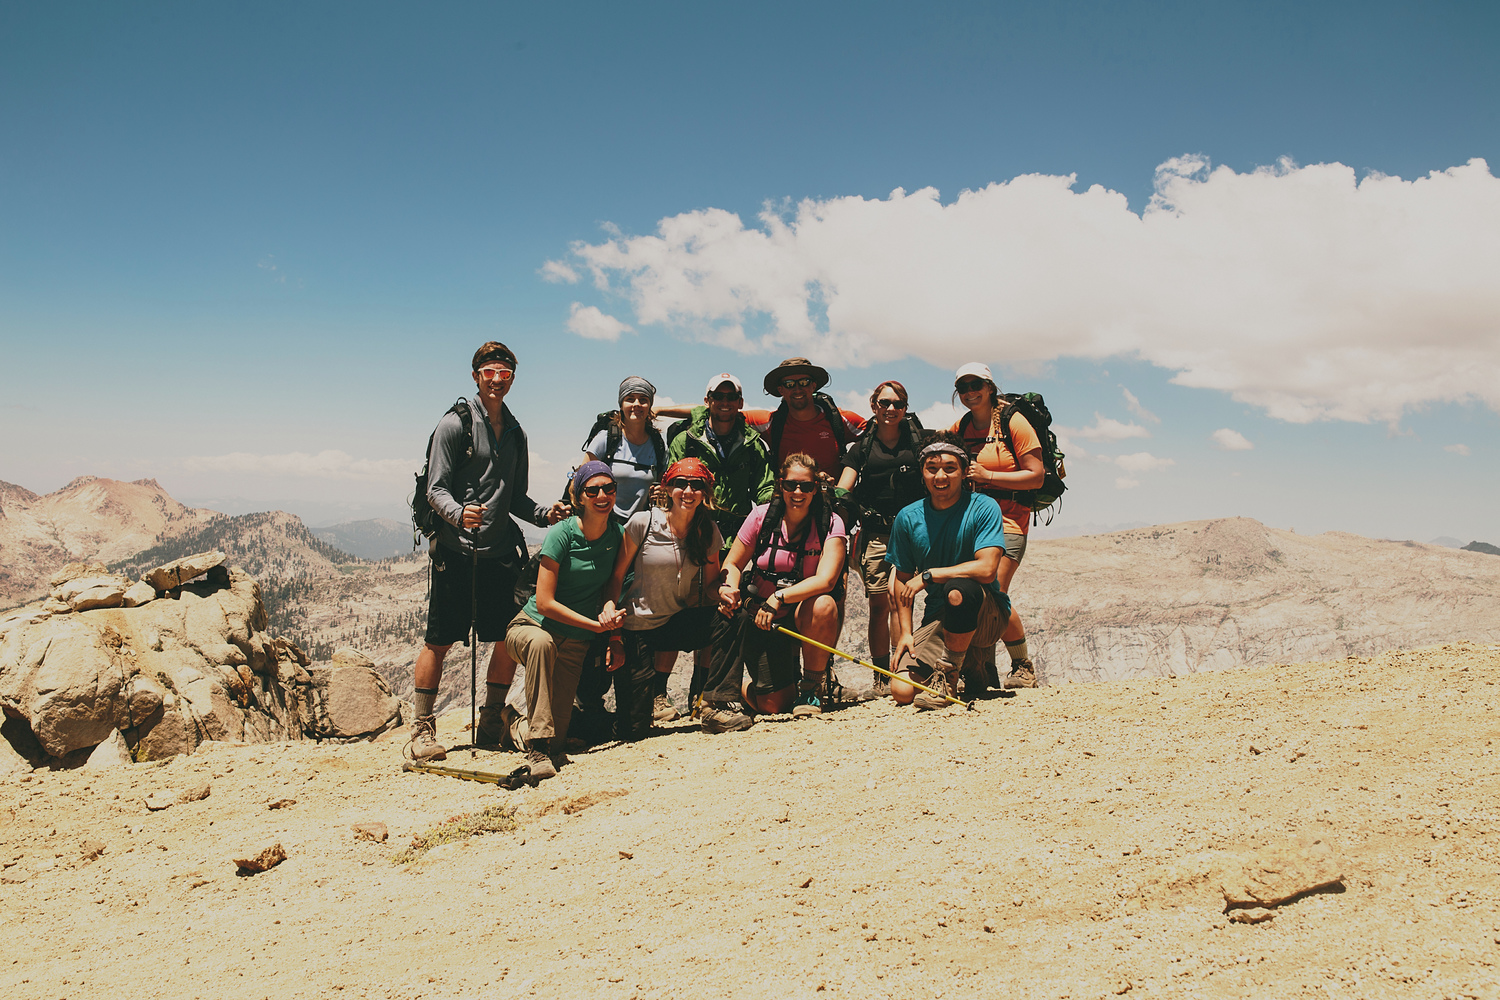 the group after summiting Alta Peak (11207 ft)